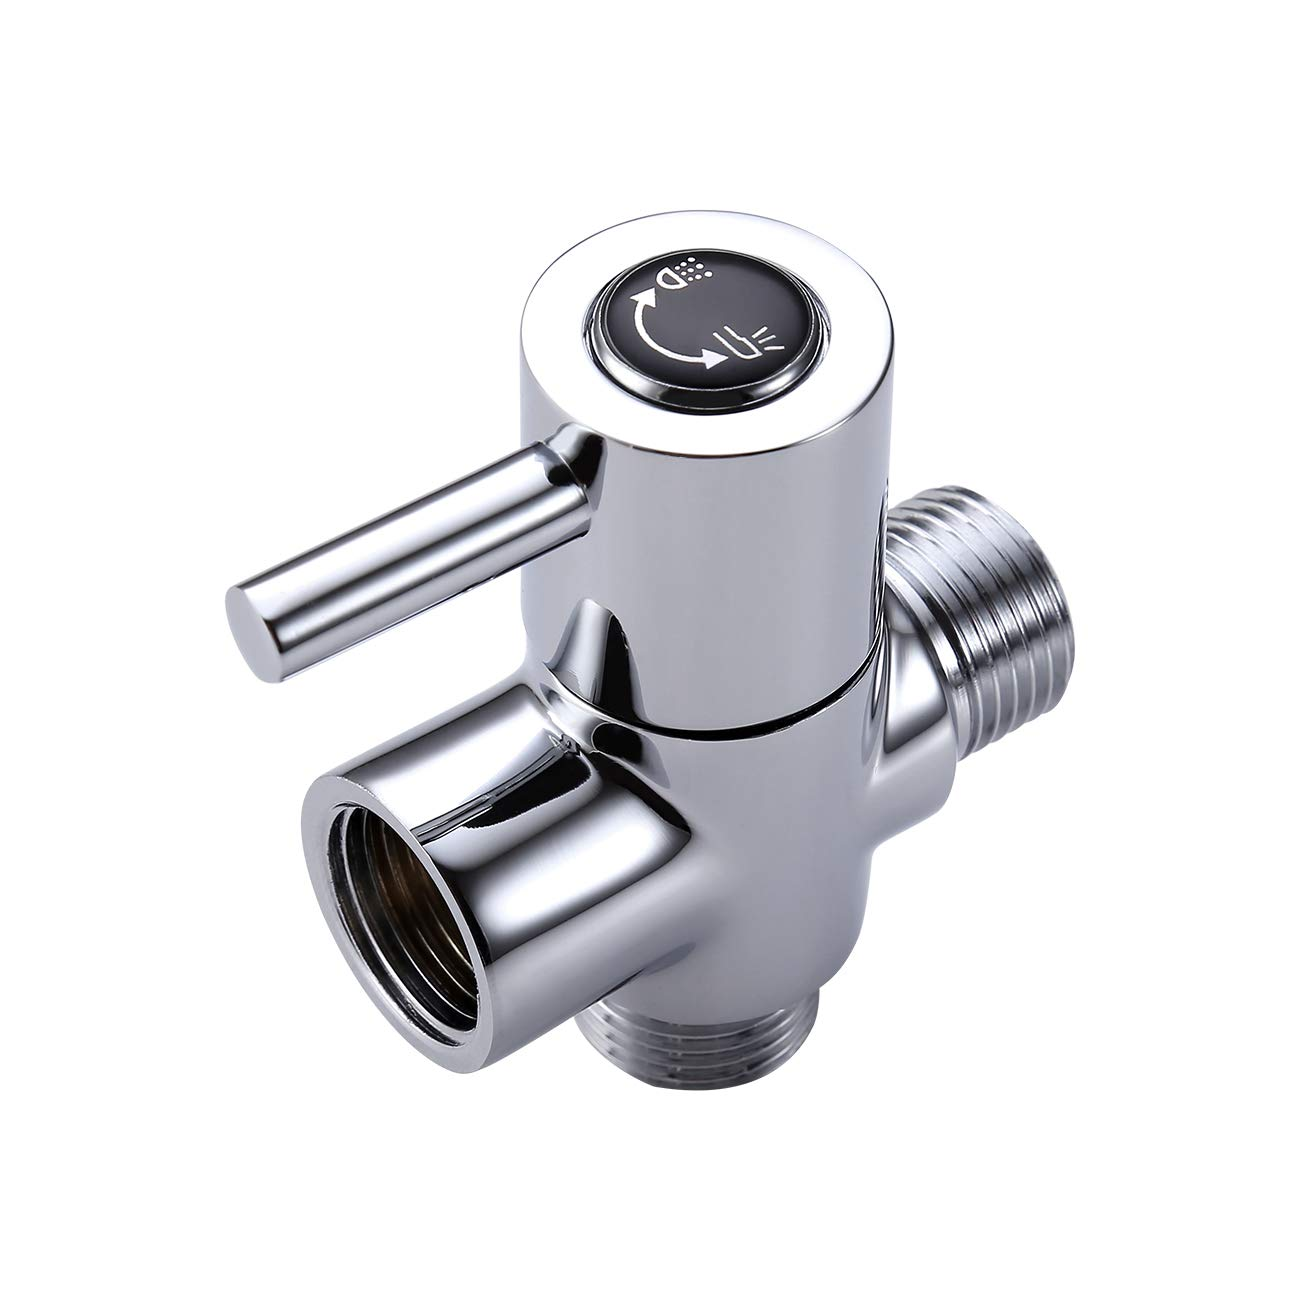 KES Brass Shower Arm Diverter Valve for Handheld Shower Head and Fixed Shower Head Universal Bathroom Shower System Replacement Component Brushed Brass PV14-BZ